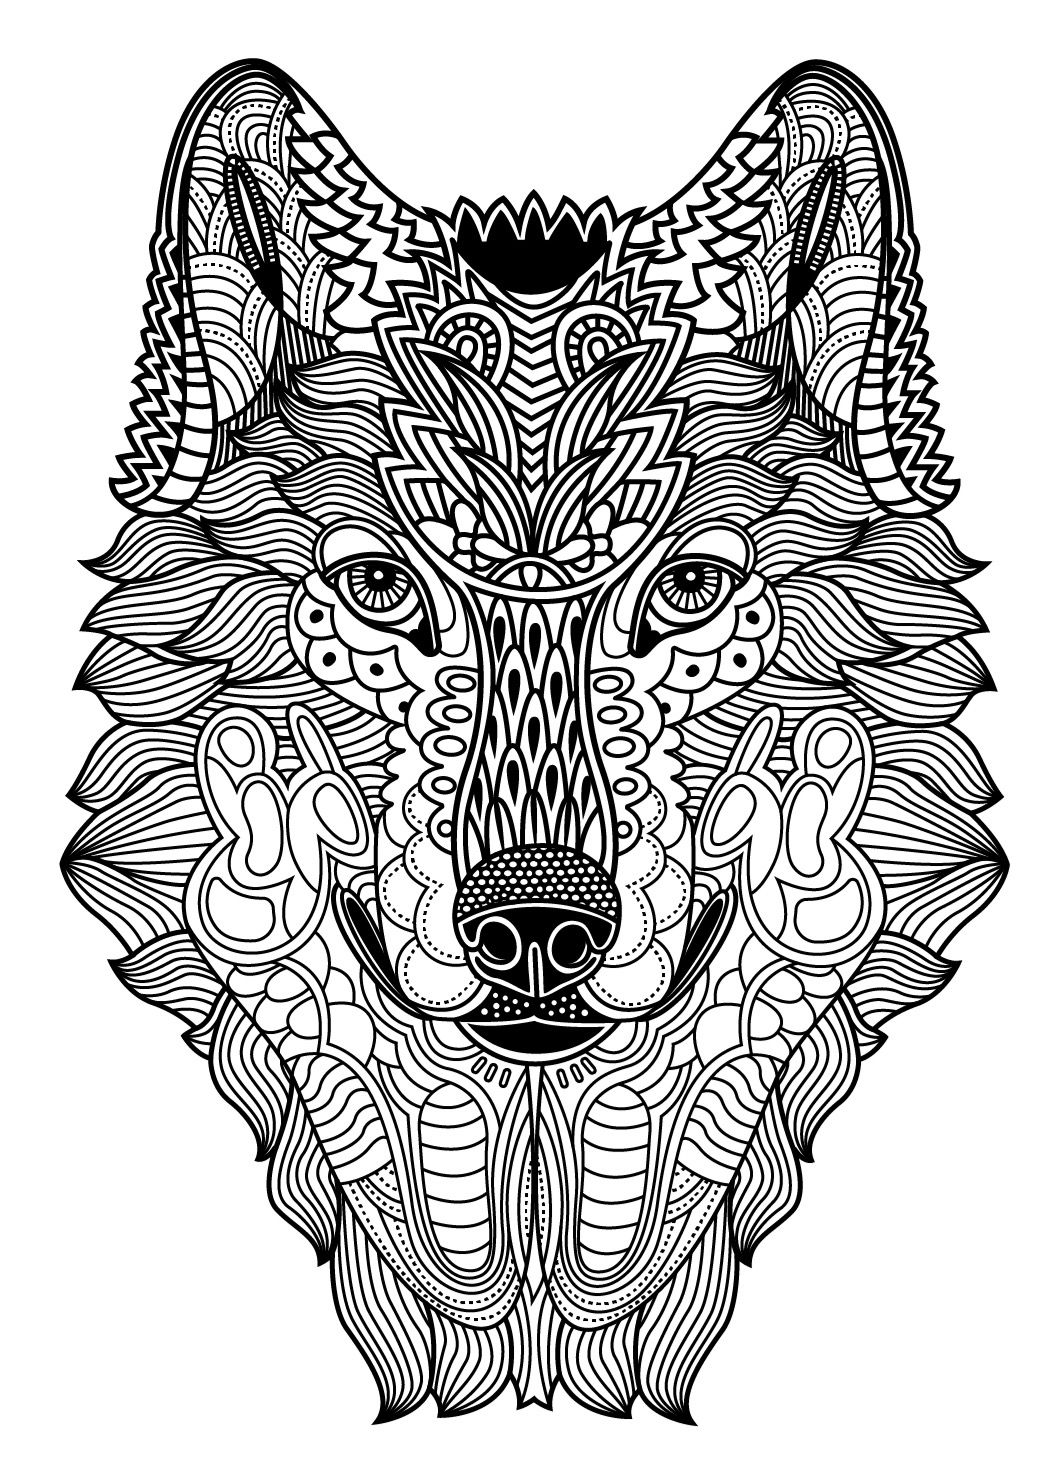 Wild Animals to color Colorish free coloring app for